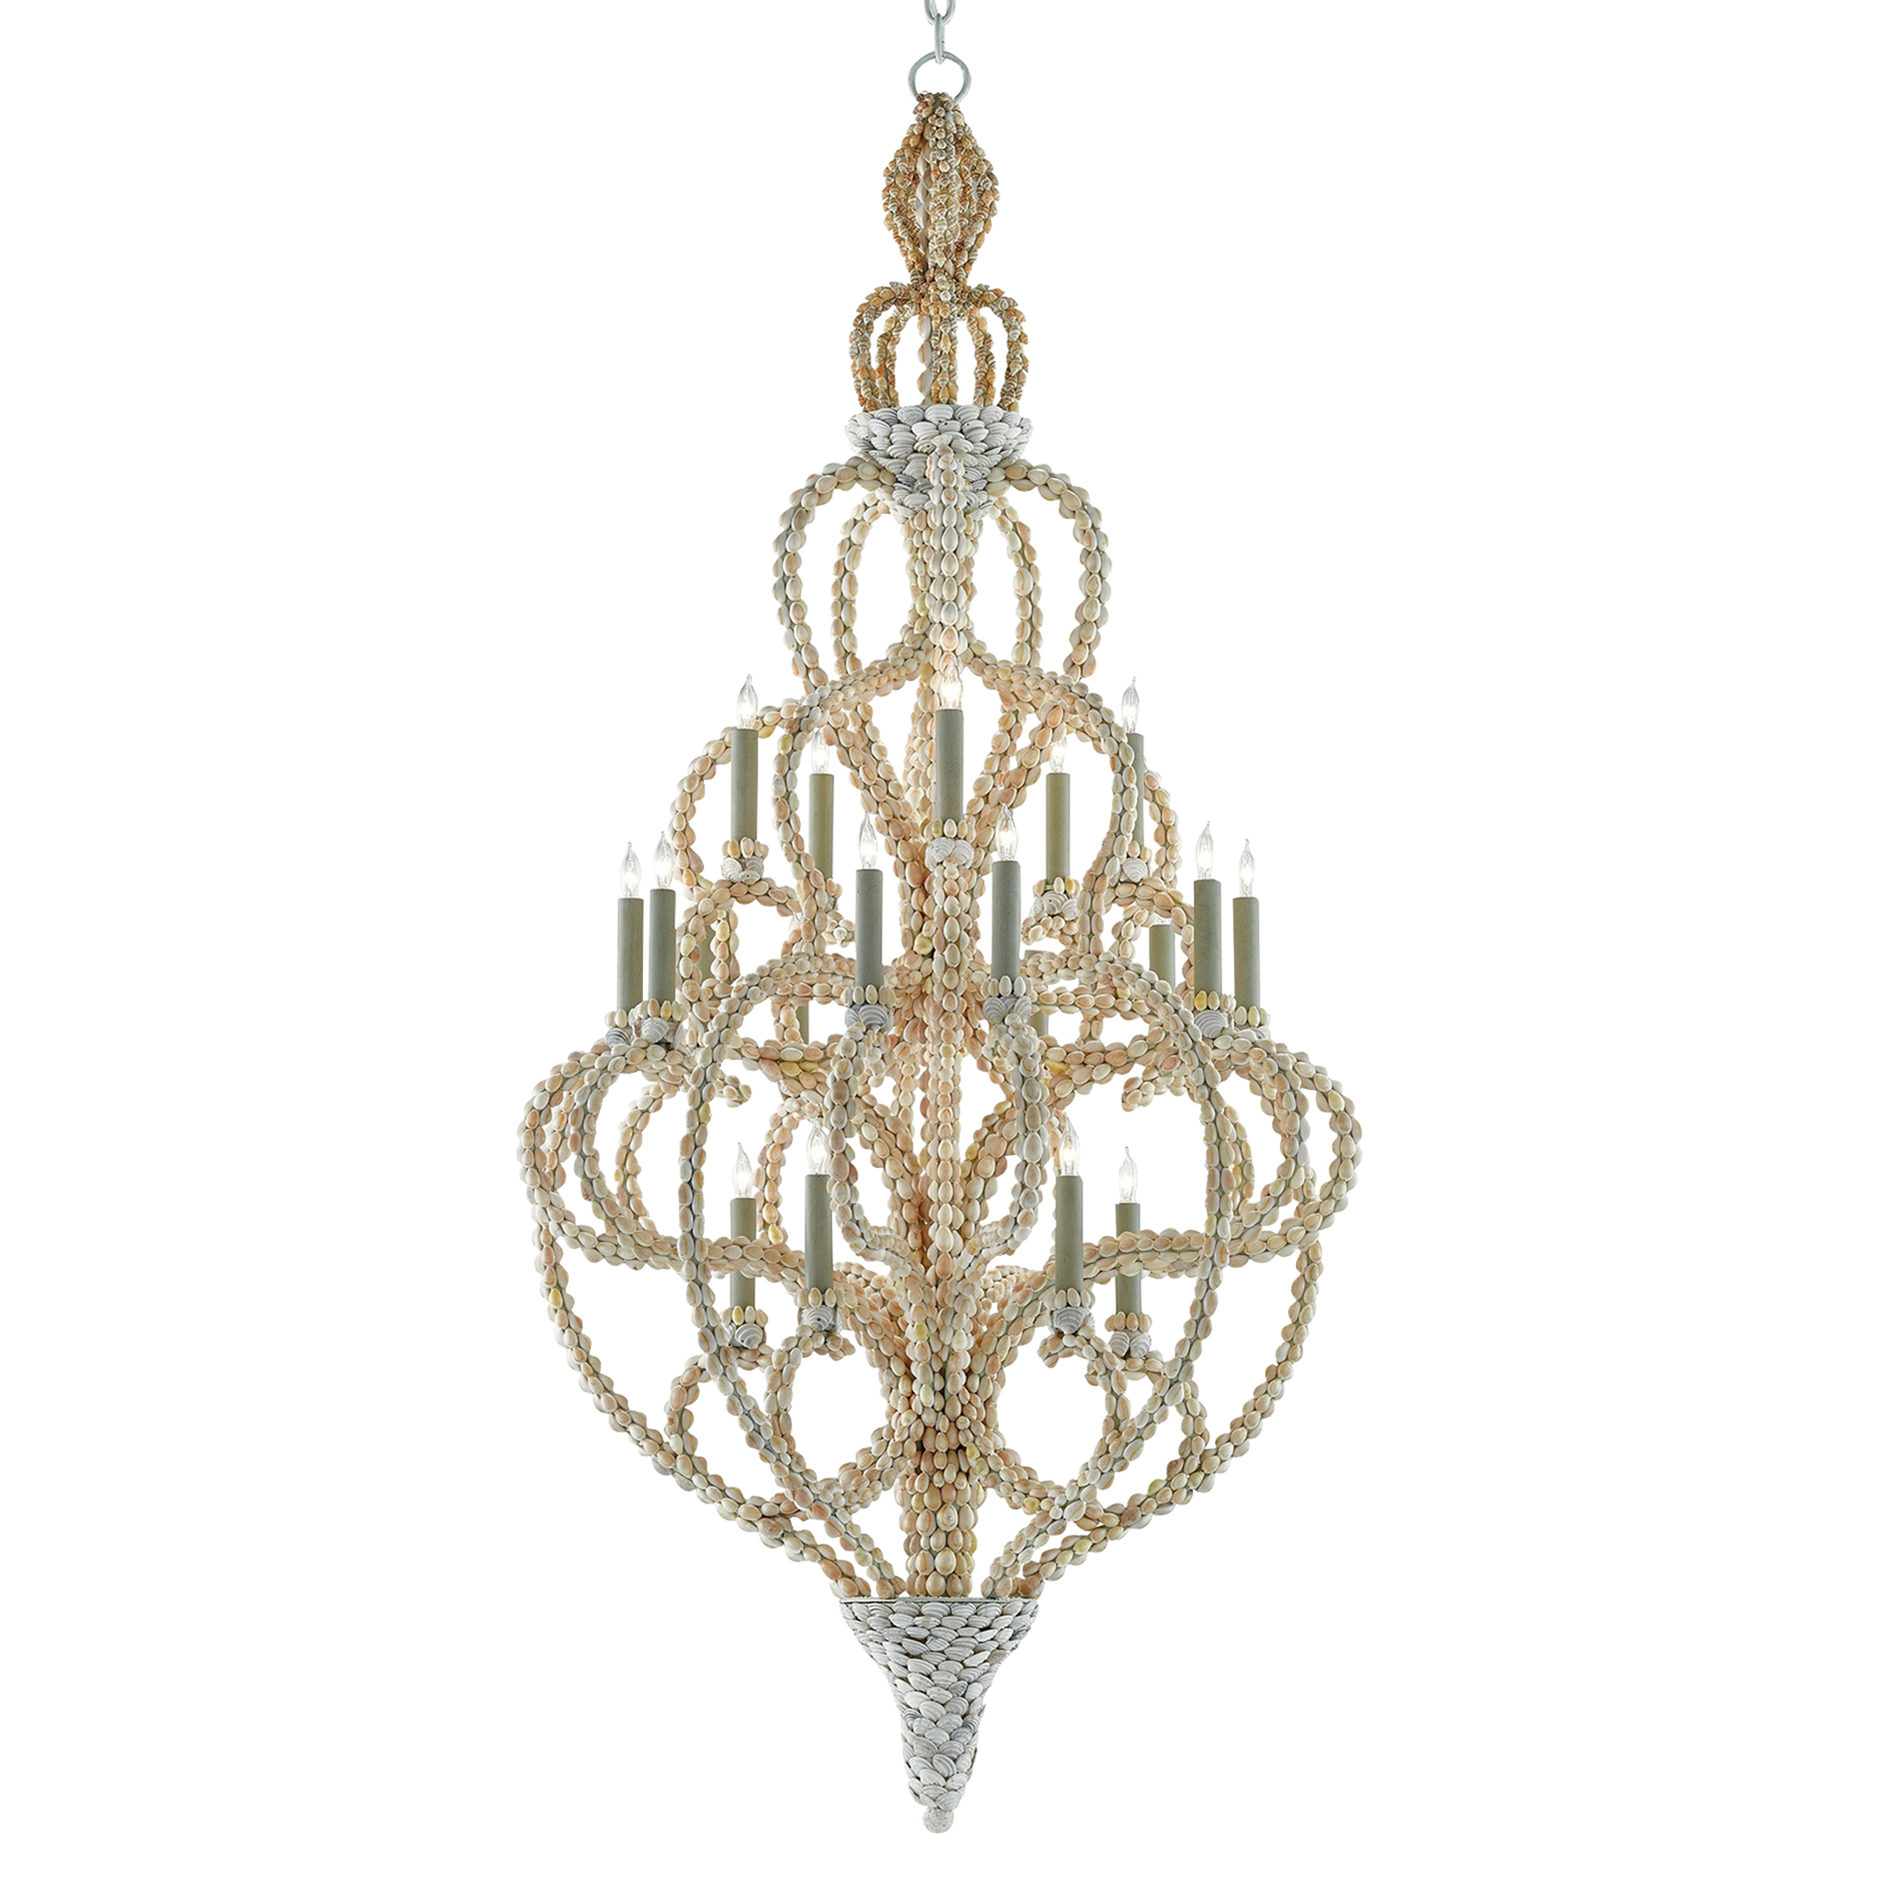 Lucine Coastal Beach Glamorous Natural Shell Chandelier - Large